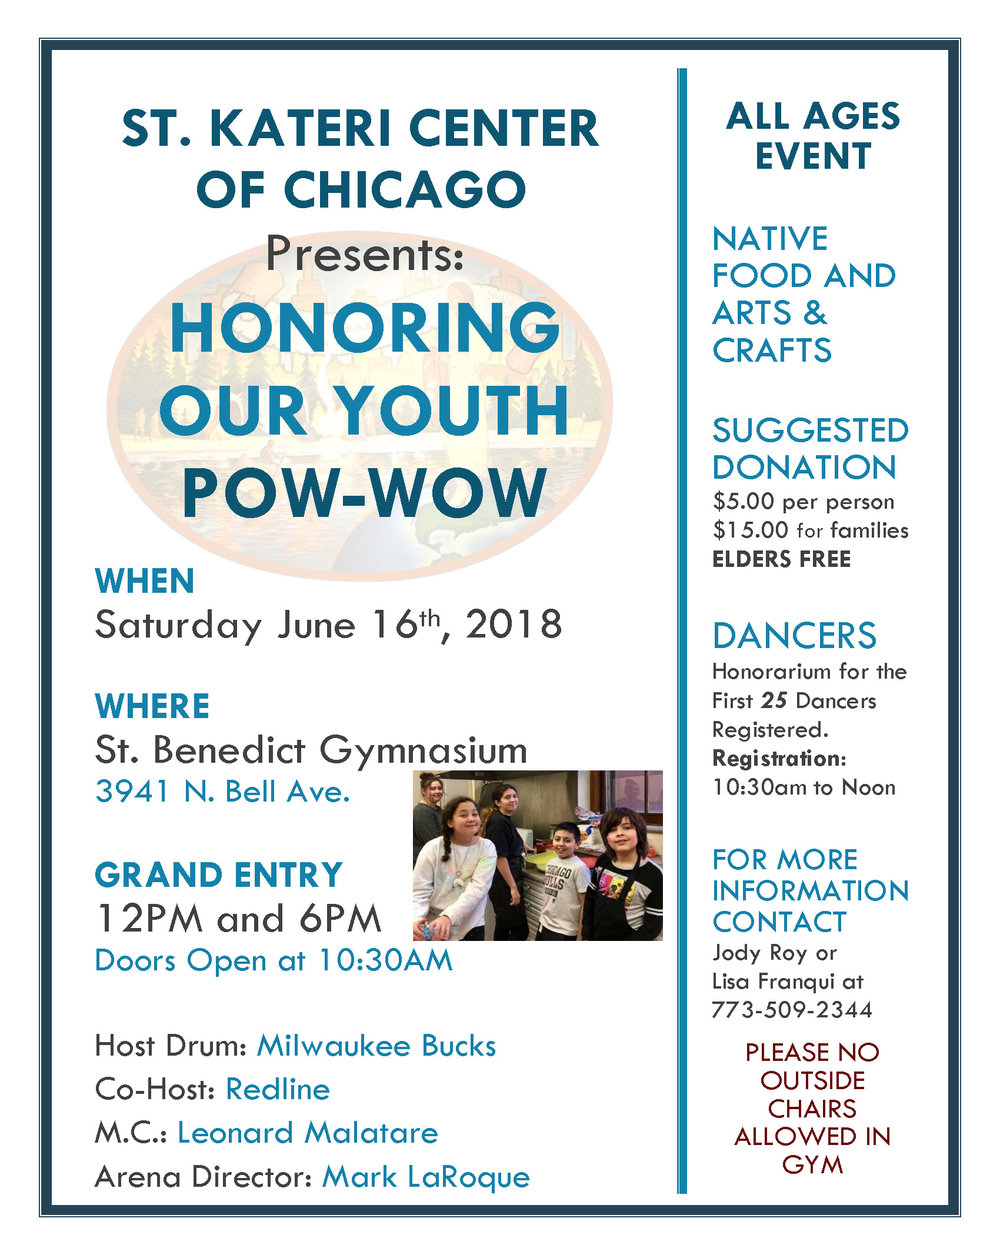 St. Kateri Center 2018 Pow Wow Flier.jpg